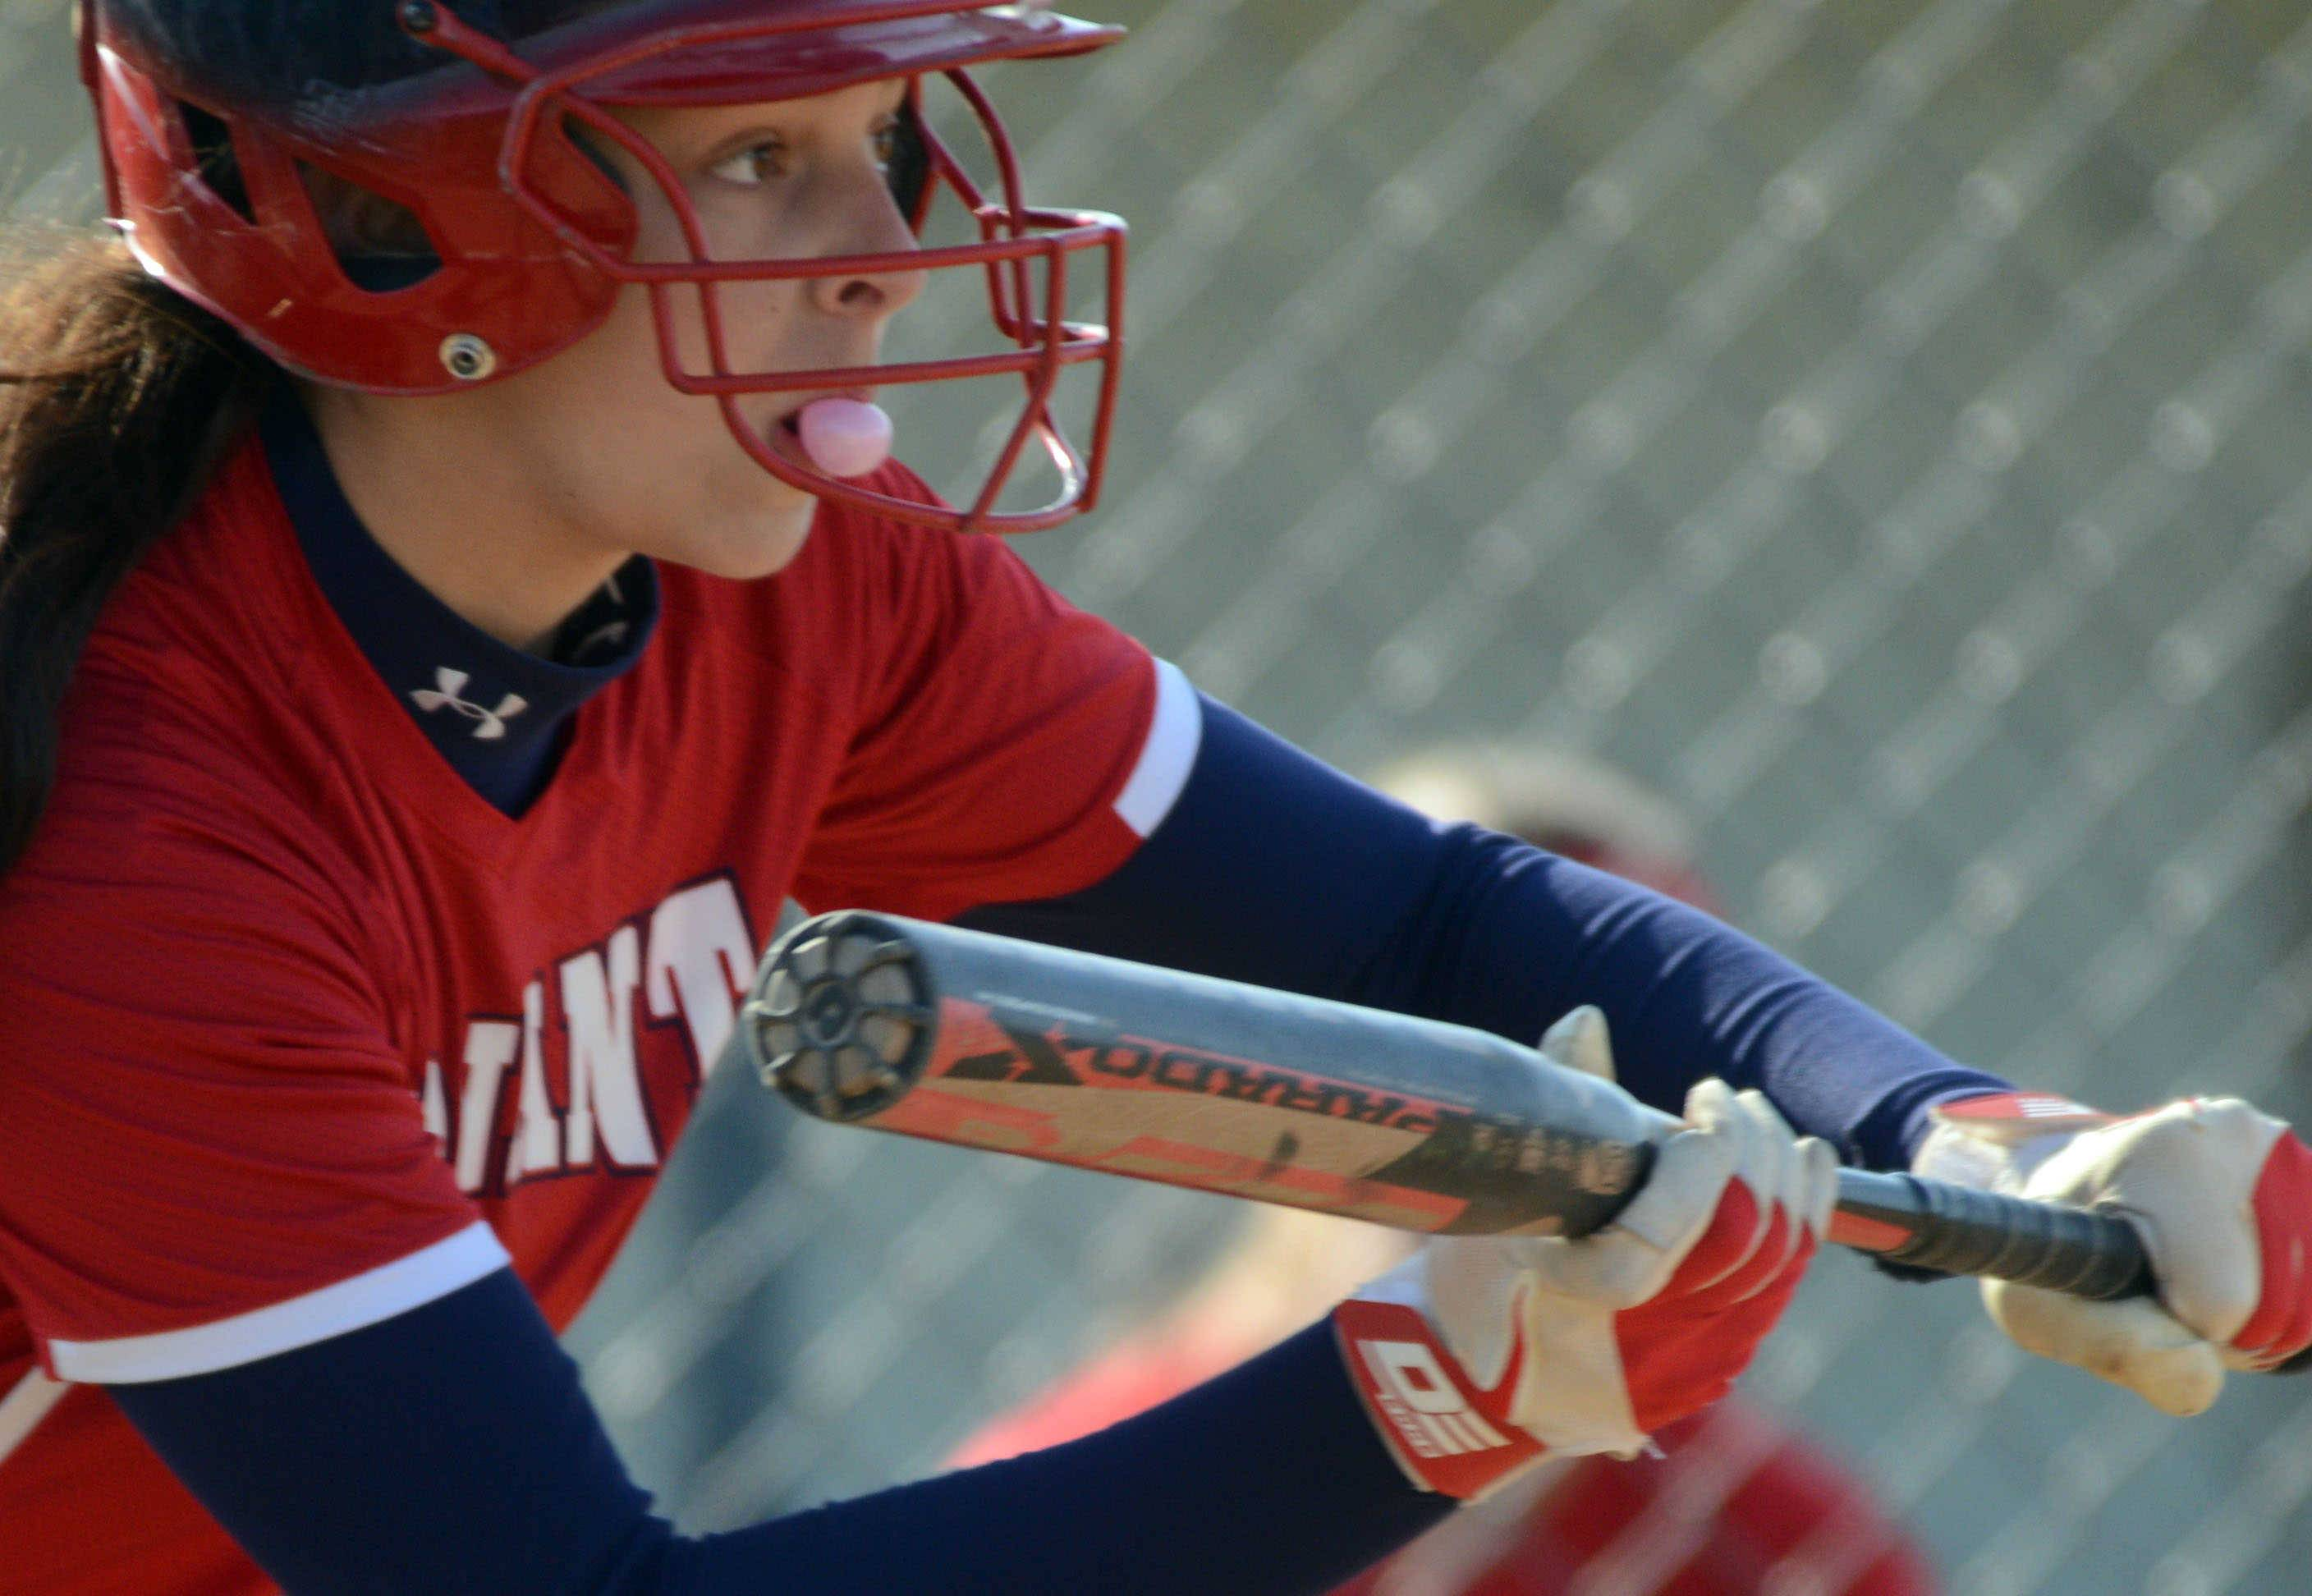 Conant's DeeDee Durr makes a bubble as she shows bunt against Prospect on Monday.